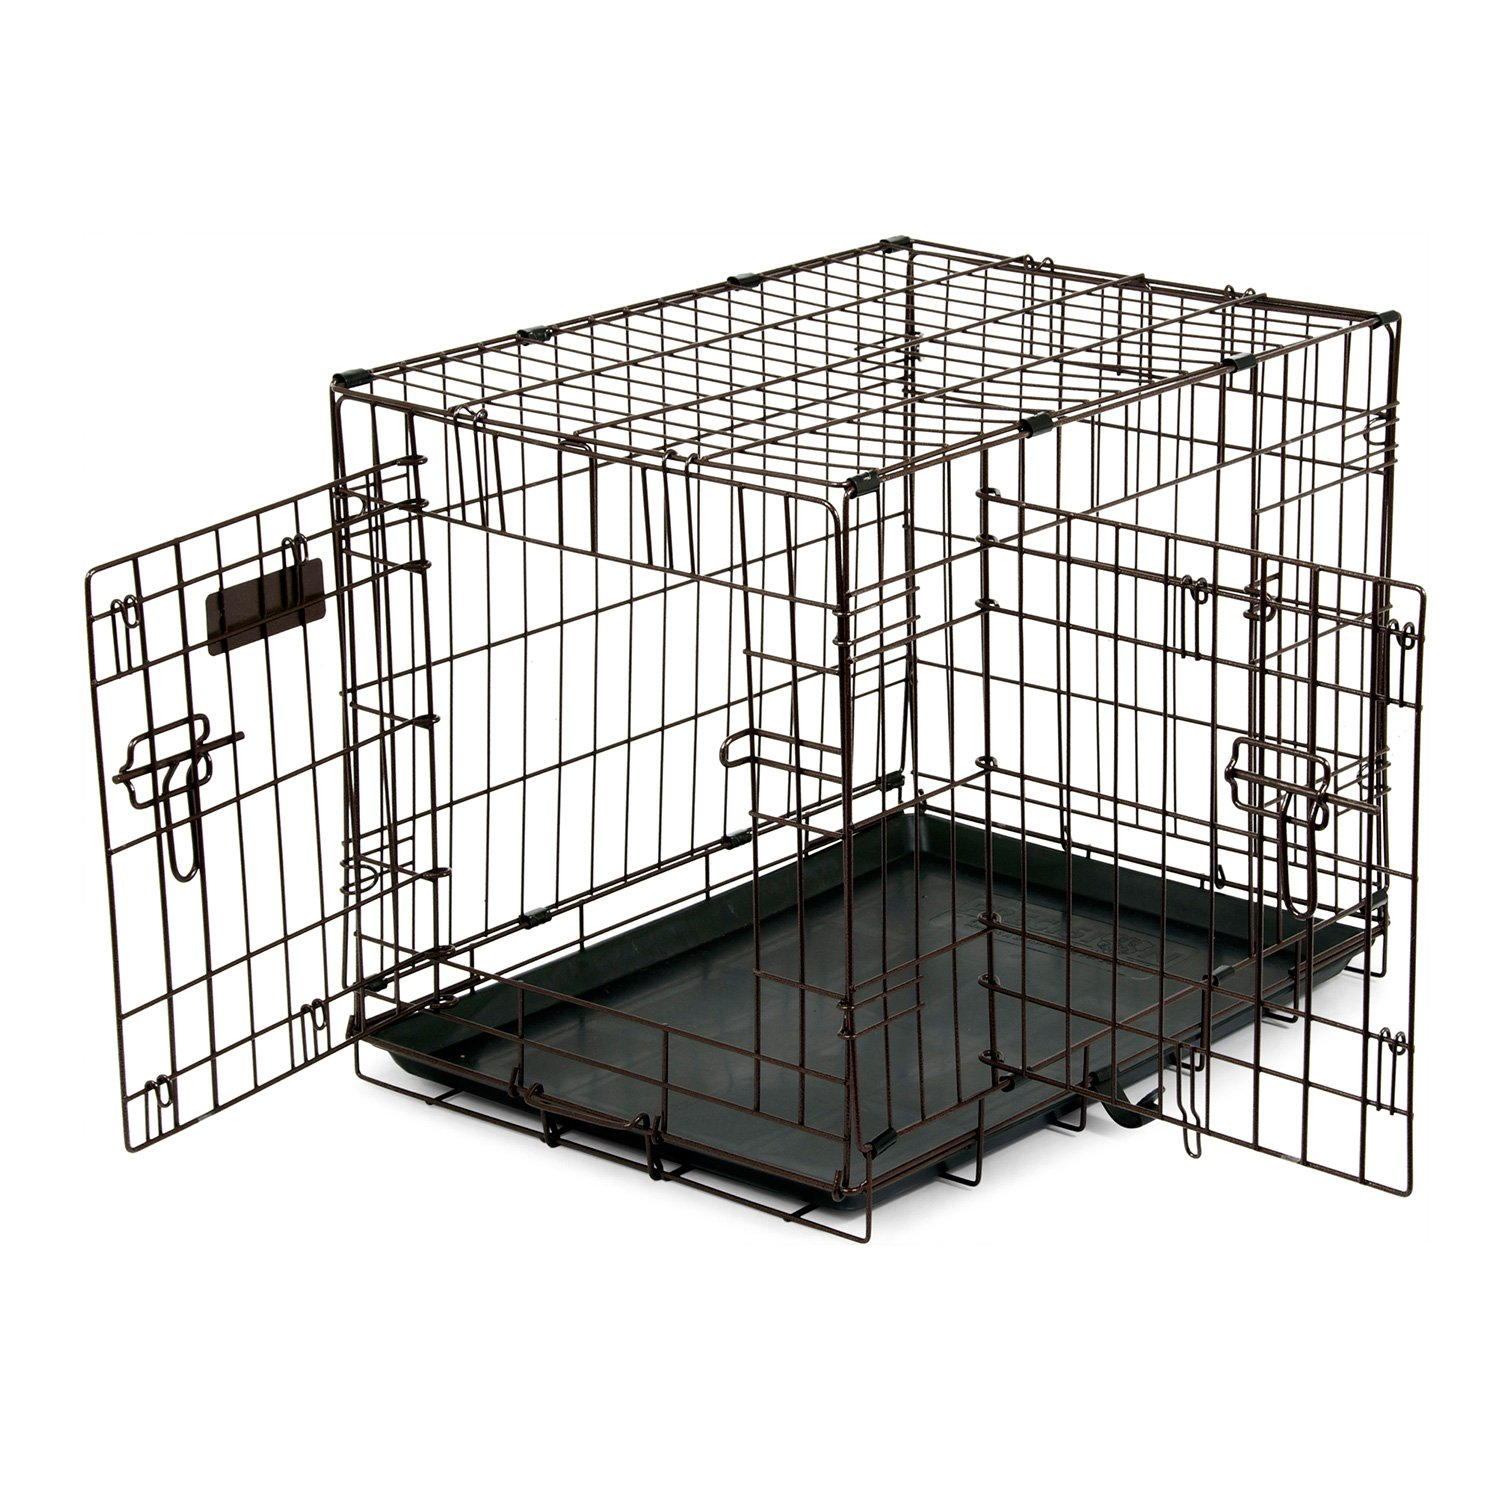 Petco Premium 2 Door Dog Crate Image collections - doors design modern